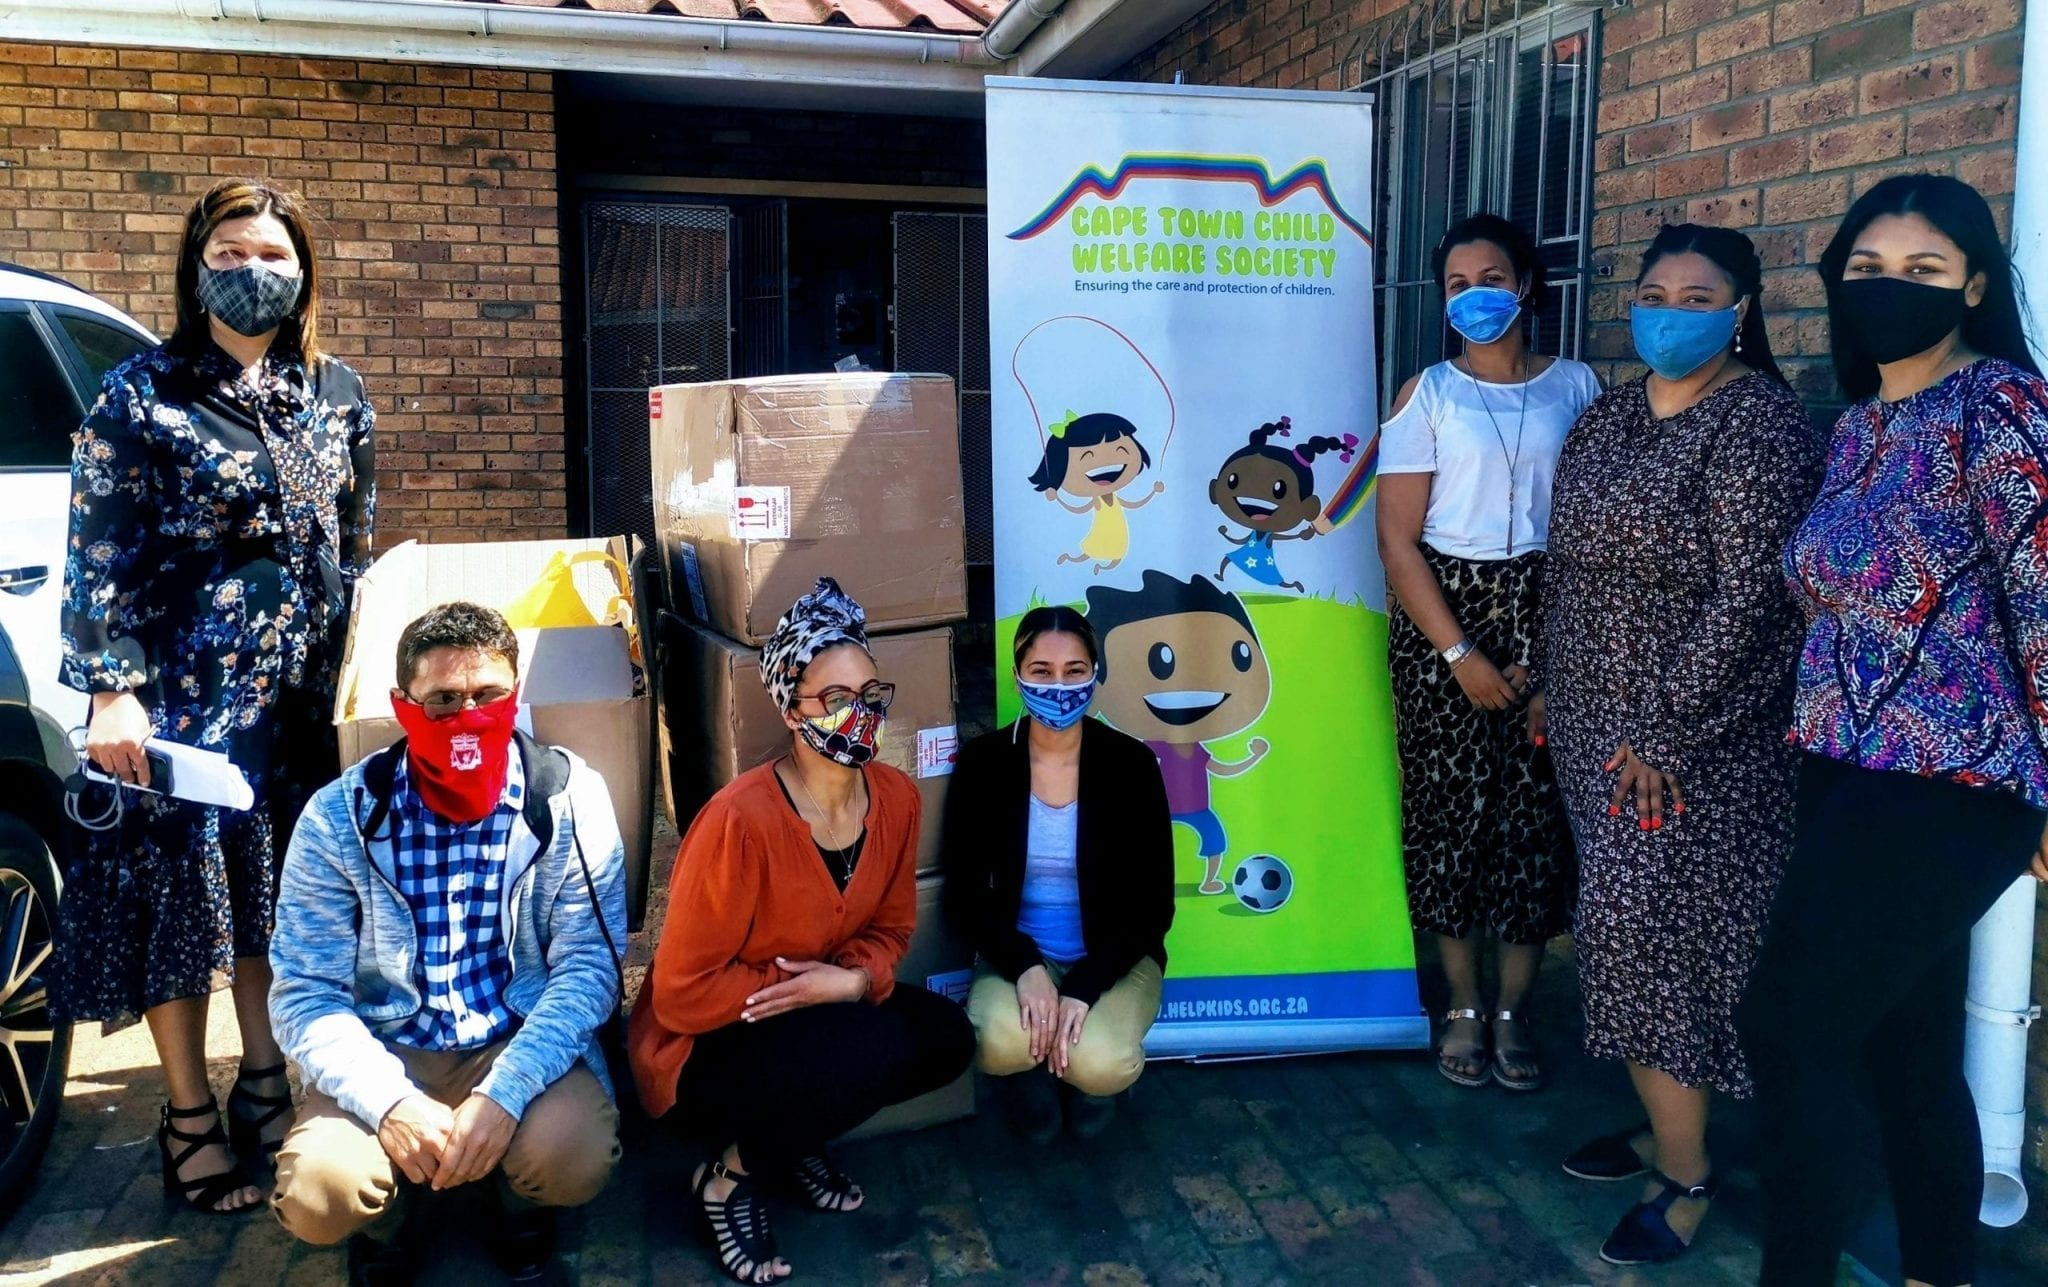 Volunteers standing by donations for the Cape Town Child Welfare Society